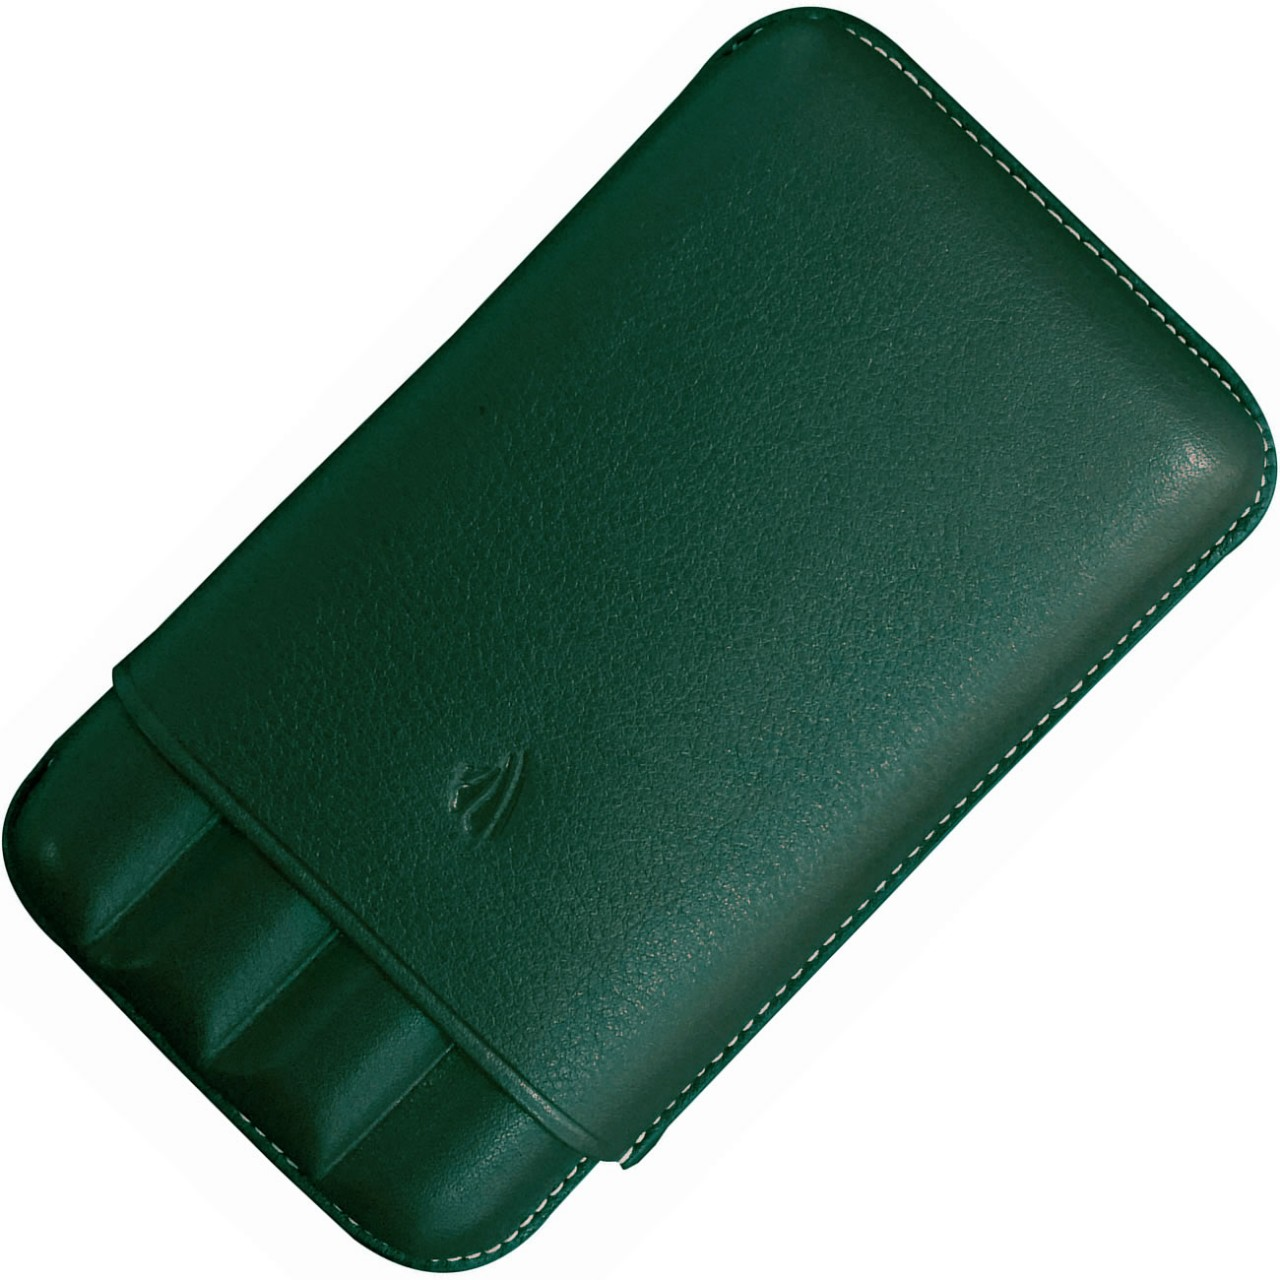 COLLECTOR 4-PEN CASE * RIVIERA FOREST